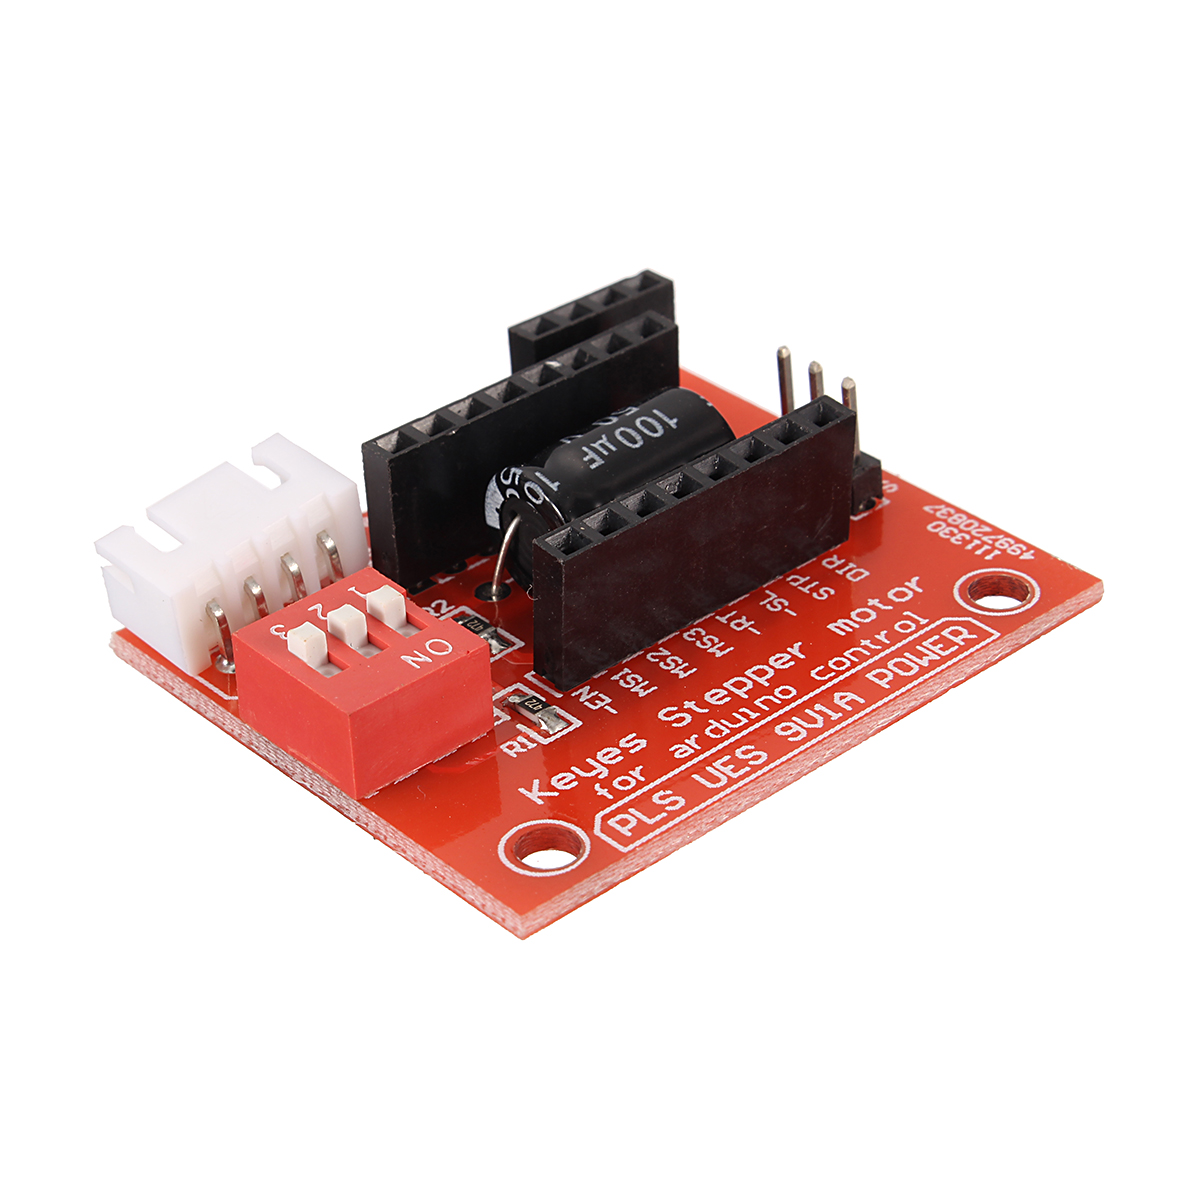 A4988-DRV8825 Stepper Motor Driver Control Board For 3D Printer Arduino